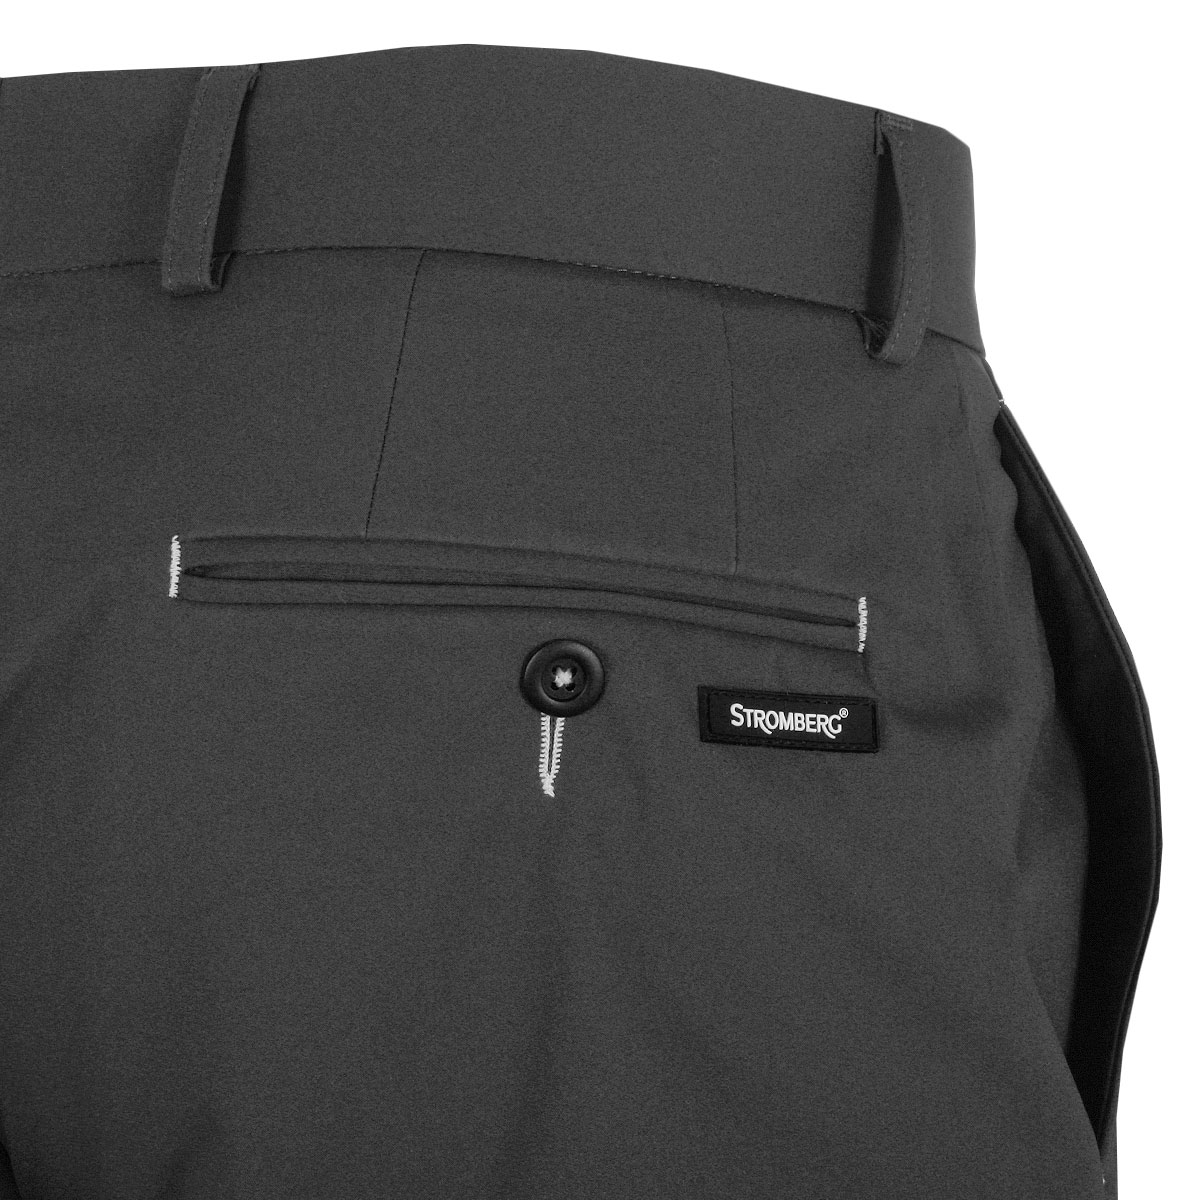 Stromberg-Mens-Wintra-2-0-Winter-Tech-Waterproof-Golf-Trousers-29-OFF-RRP thumbnail 10